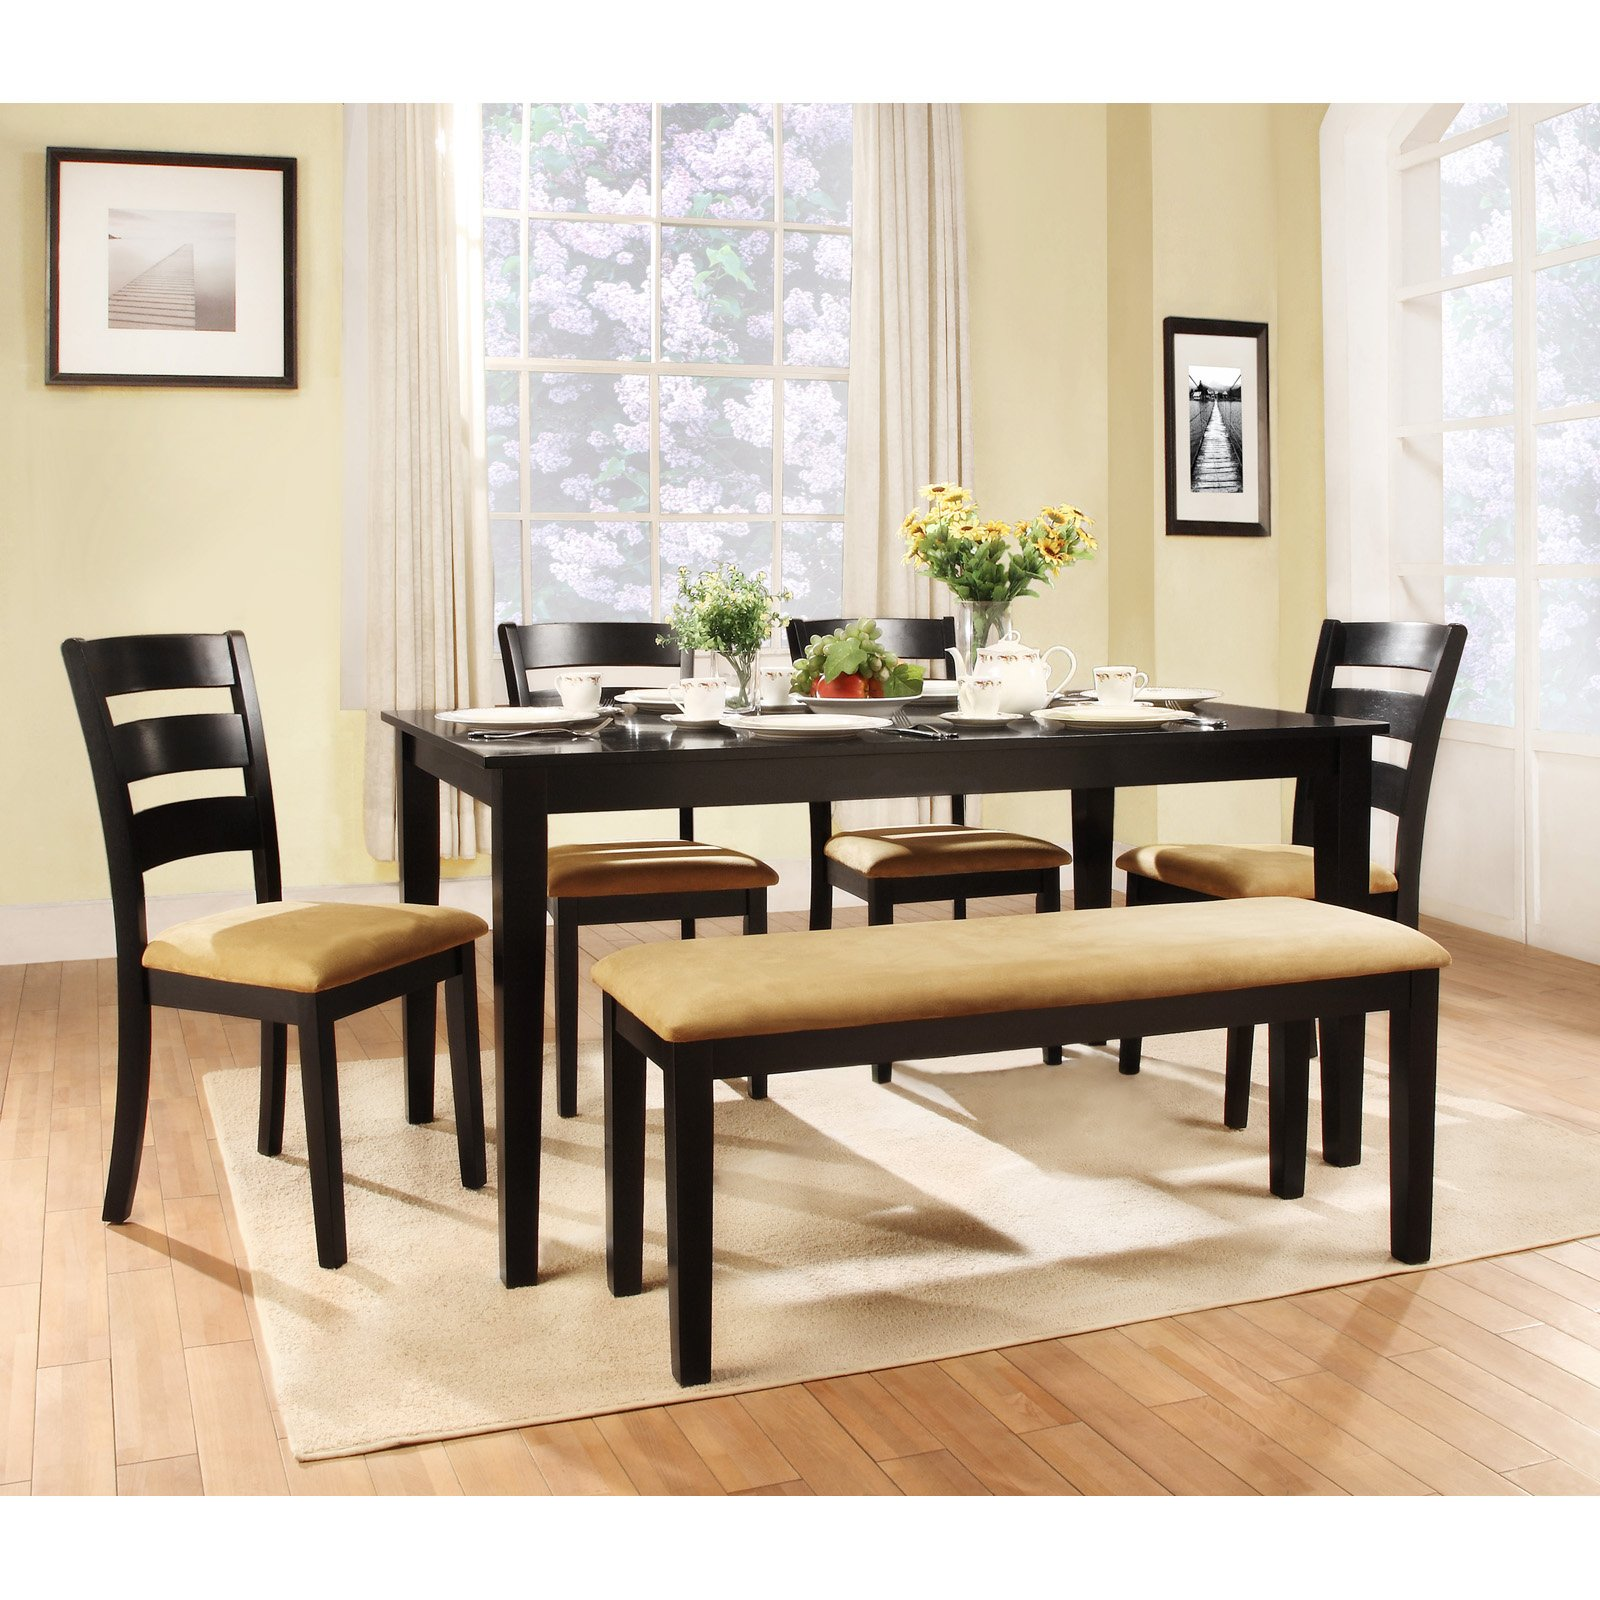 Dining Room With Bench: Modern Bench Style Dining Table Set Ideas